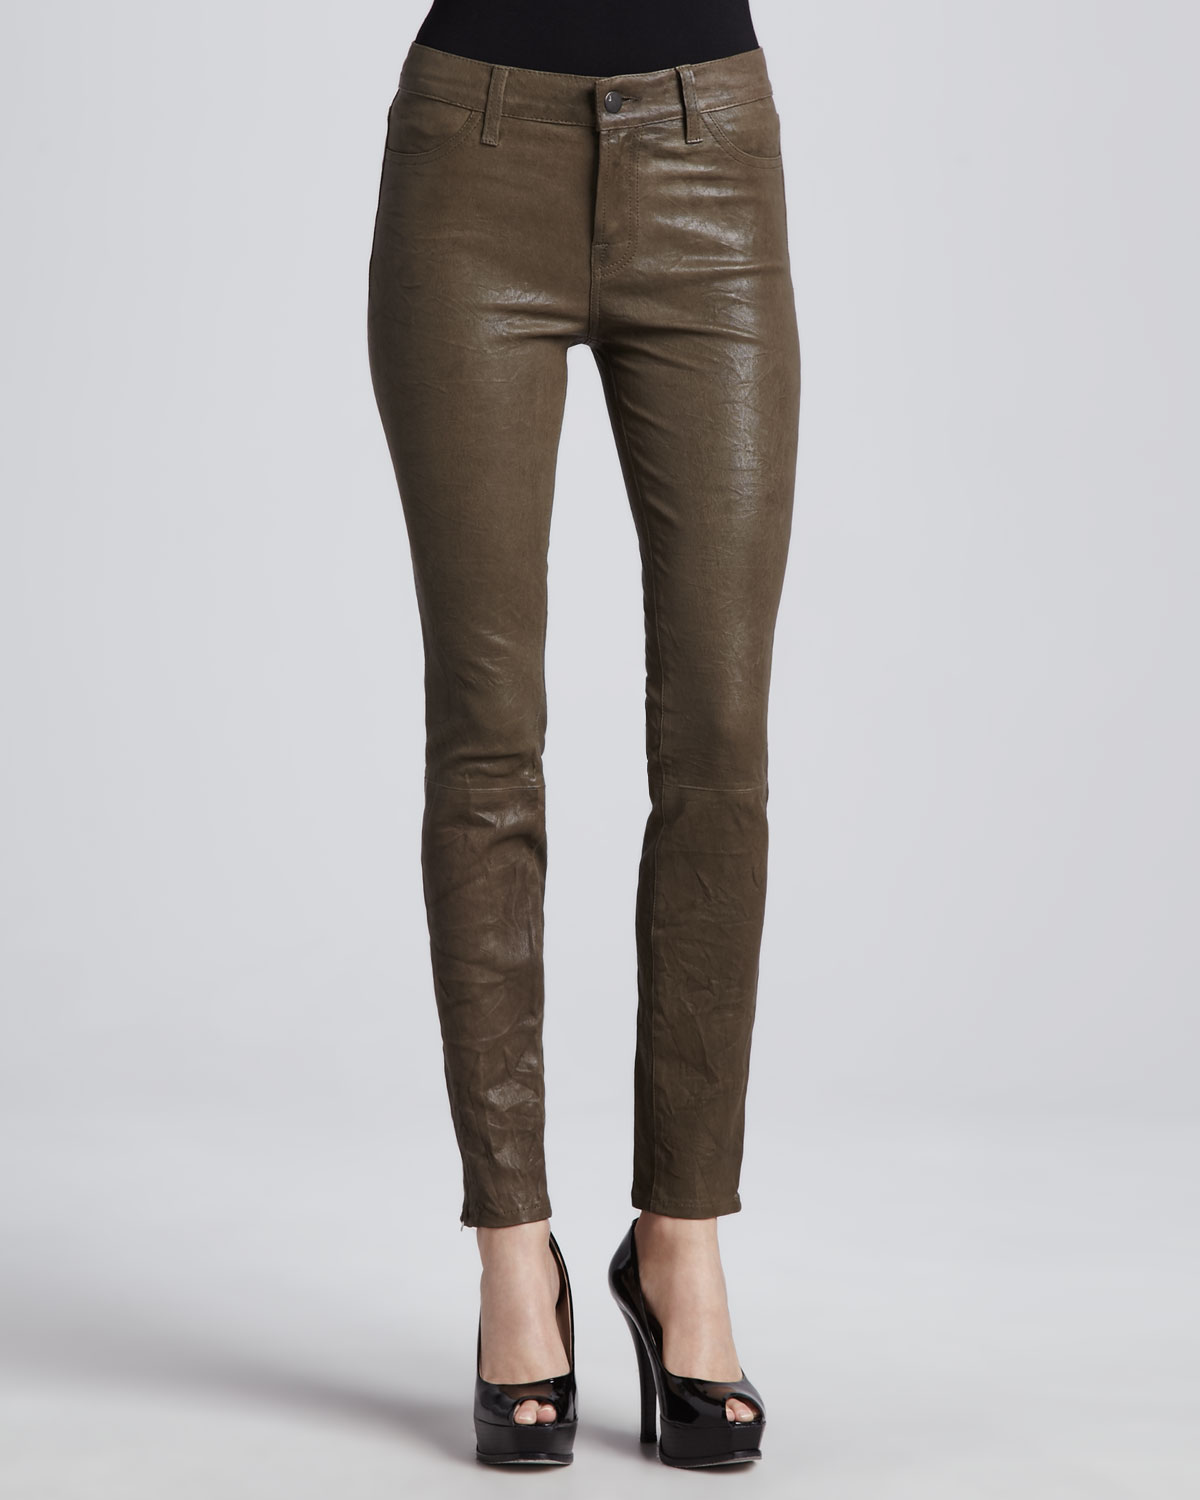 4d076dd2c4c18 Lyst - J Brand Leather Skinny Pants in Iron in Brown